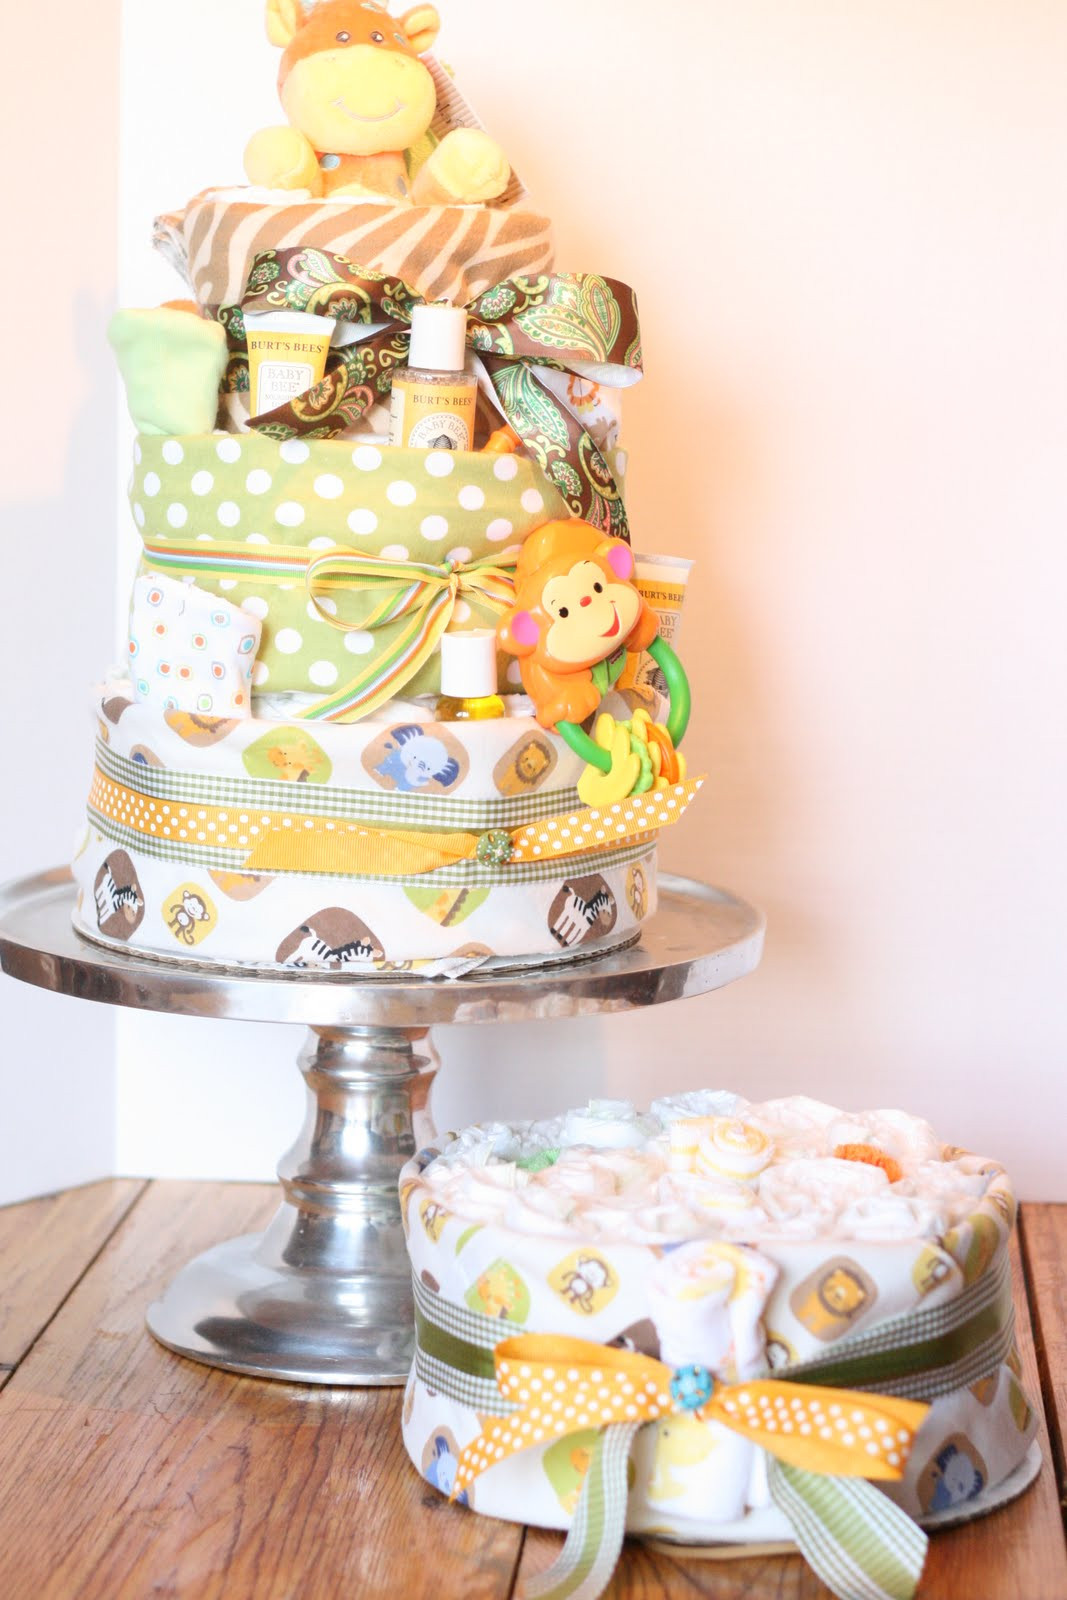 DIY Baby Shower Cakes  A Little Junk In My Trunk How to Make a Diaper Cake